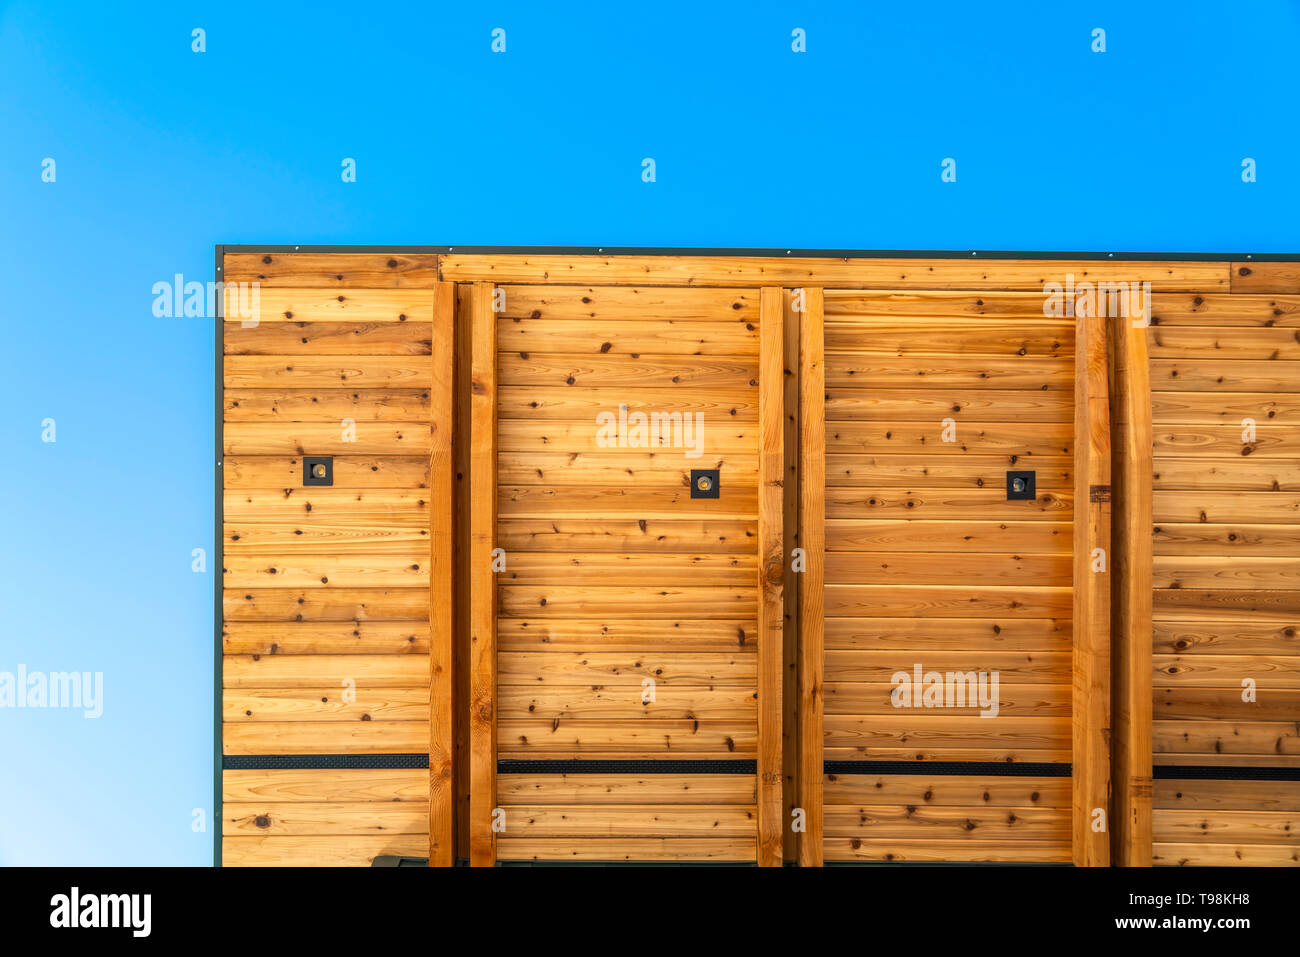 Wooden Planks Roof Building Stock Photos Wooden Planks Roof